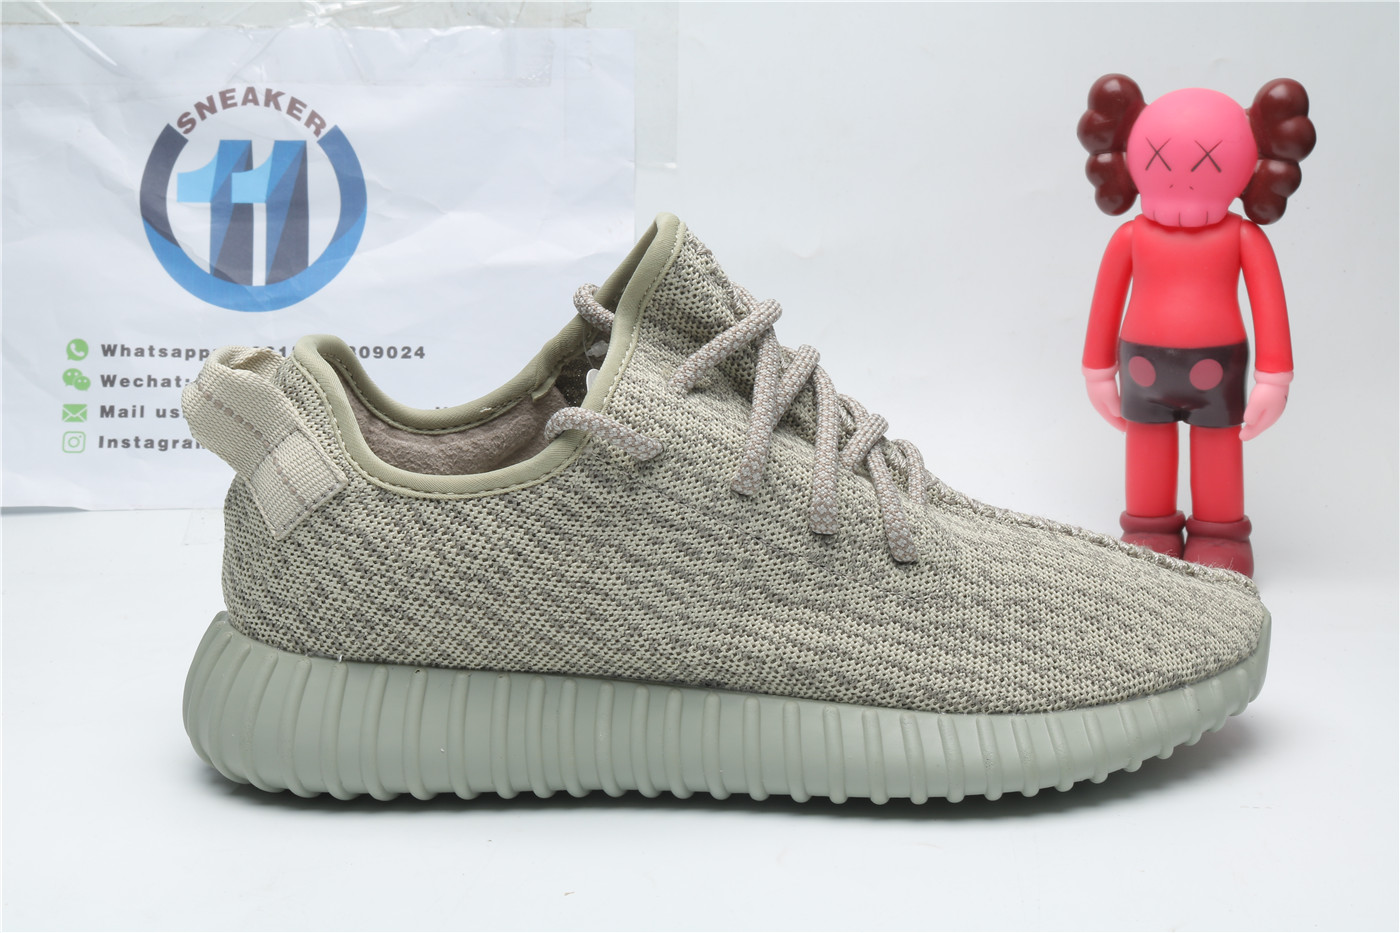 Adidas Yeezy 350 Boost Moonrock,All Products : Eleven Kicks, Eleven Kicks